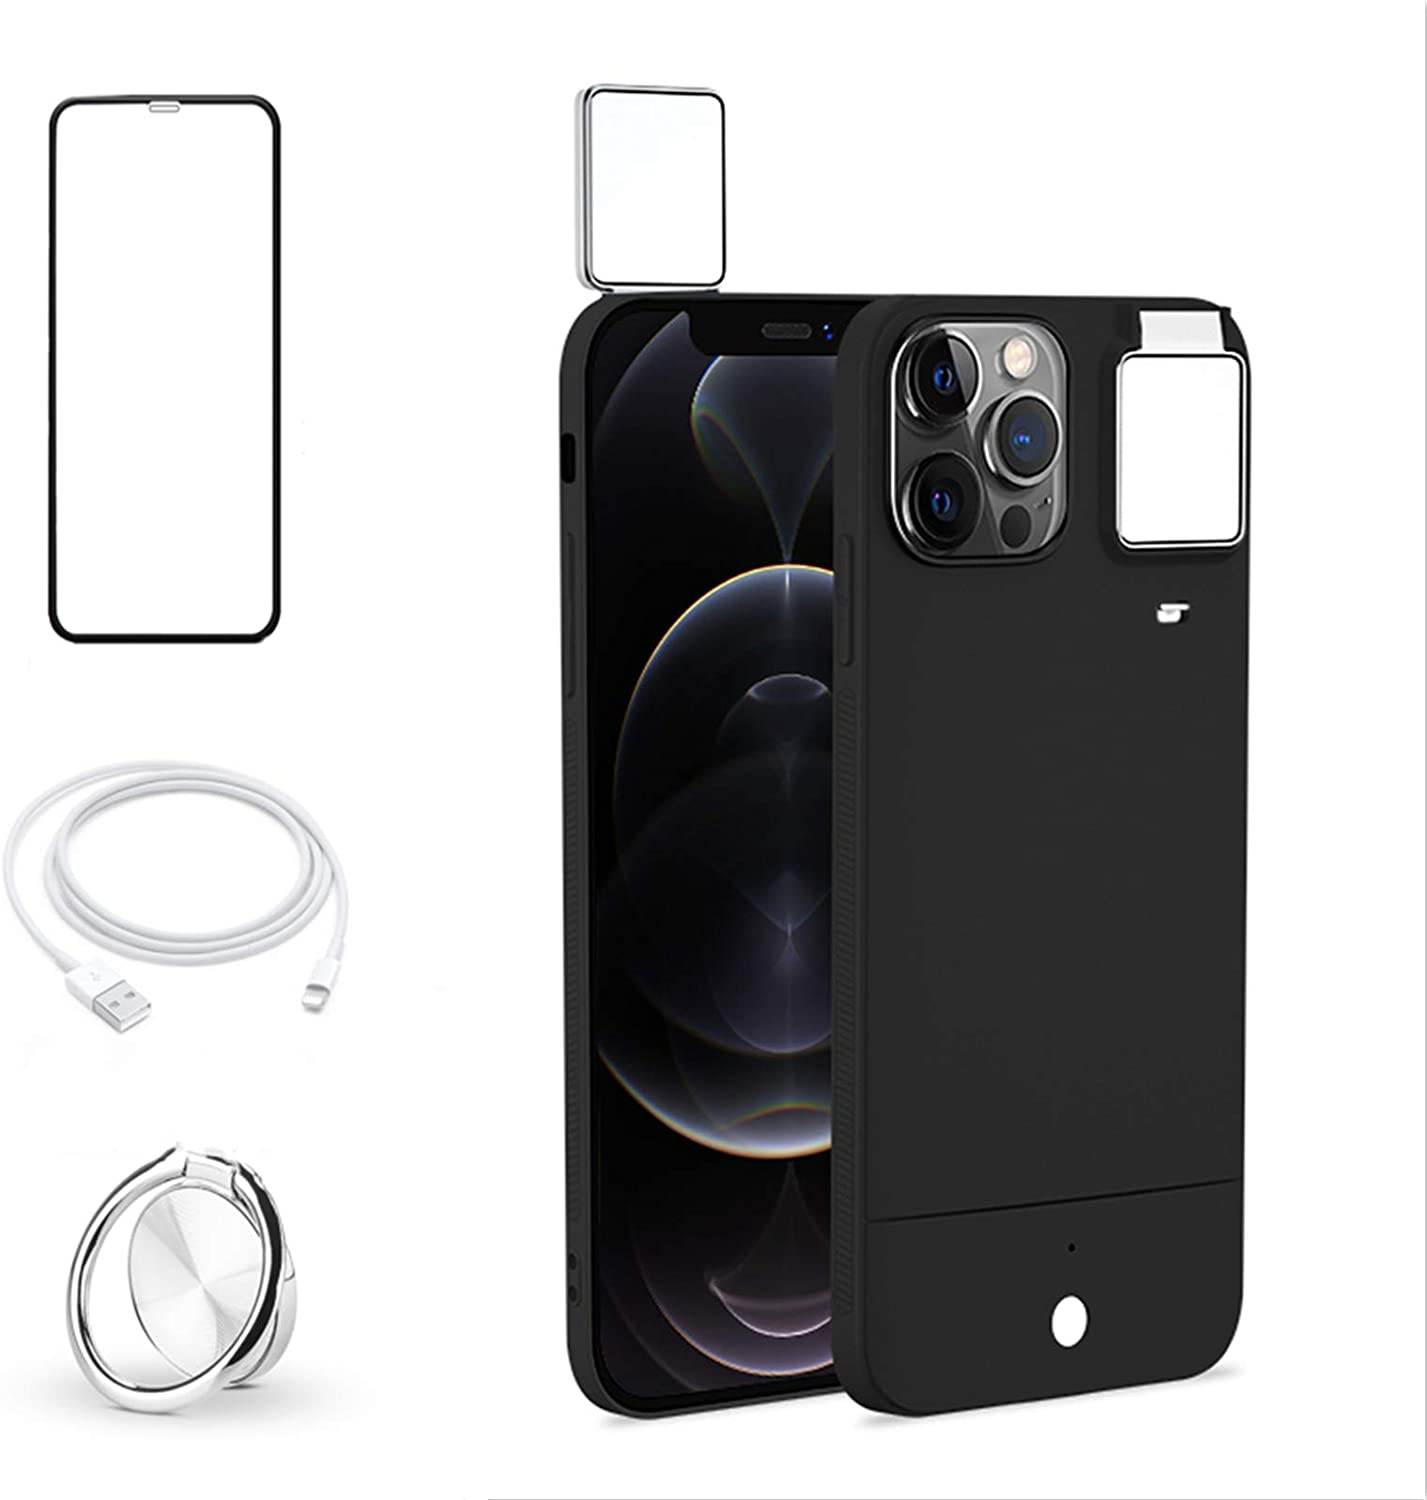 HPHRE Selfie Ring Light Case Compatible withiPhone 12 Pro Max 6.7